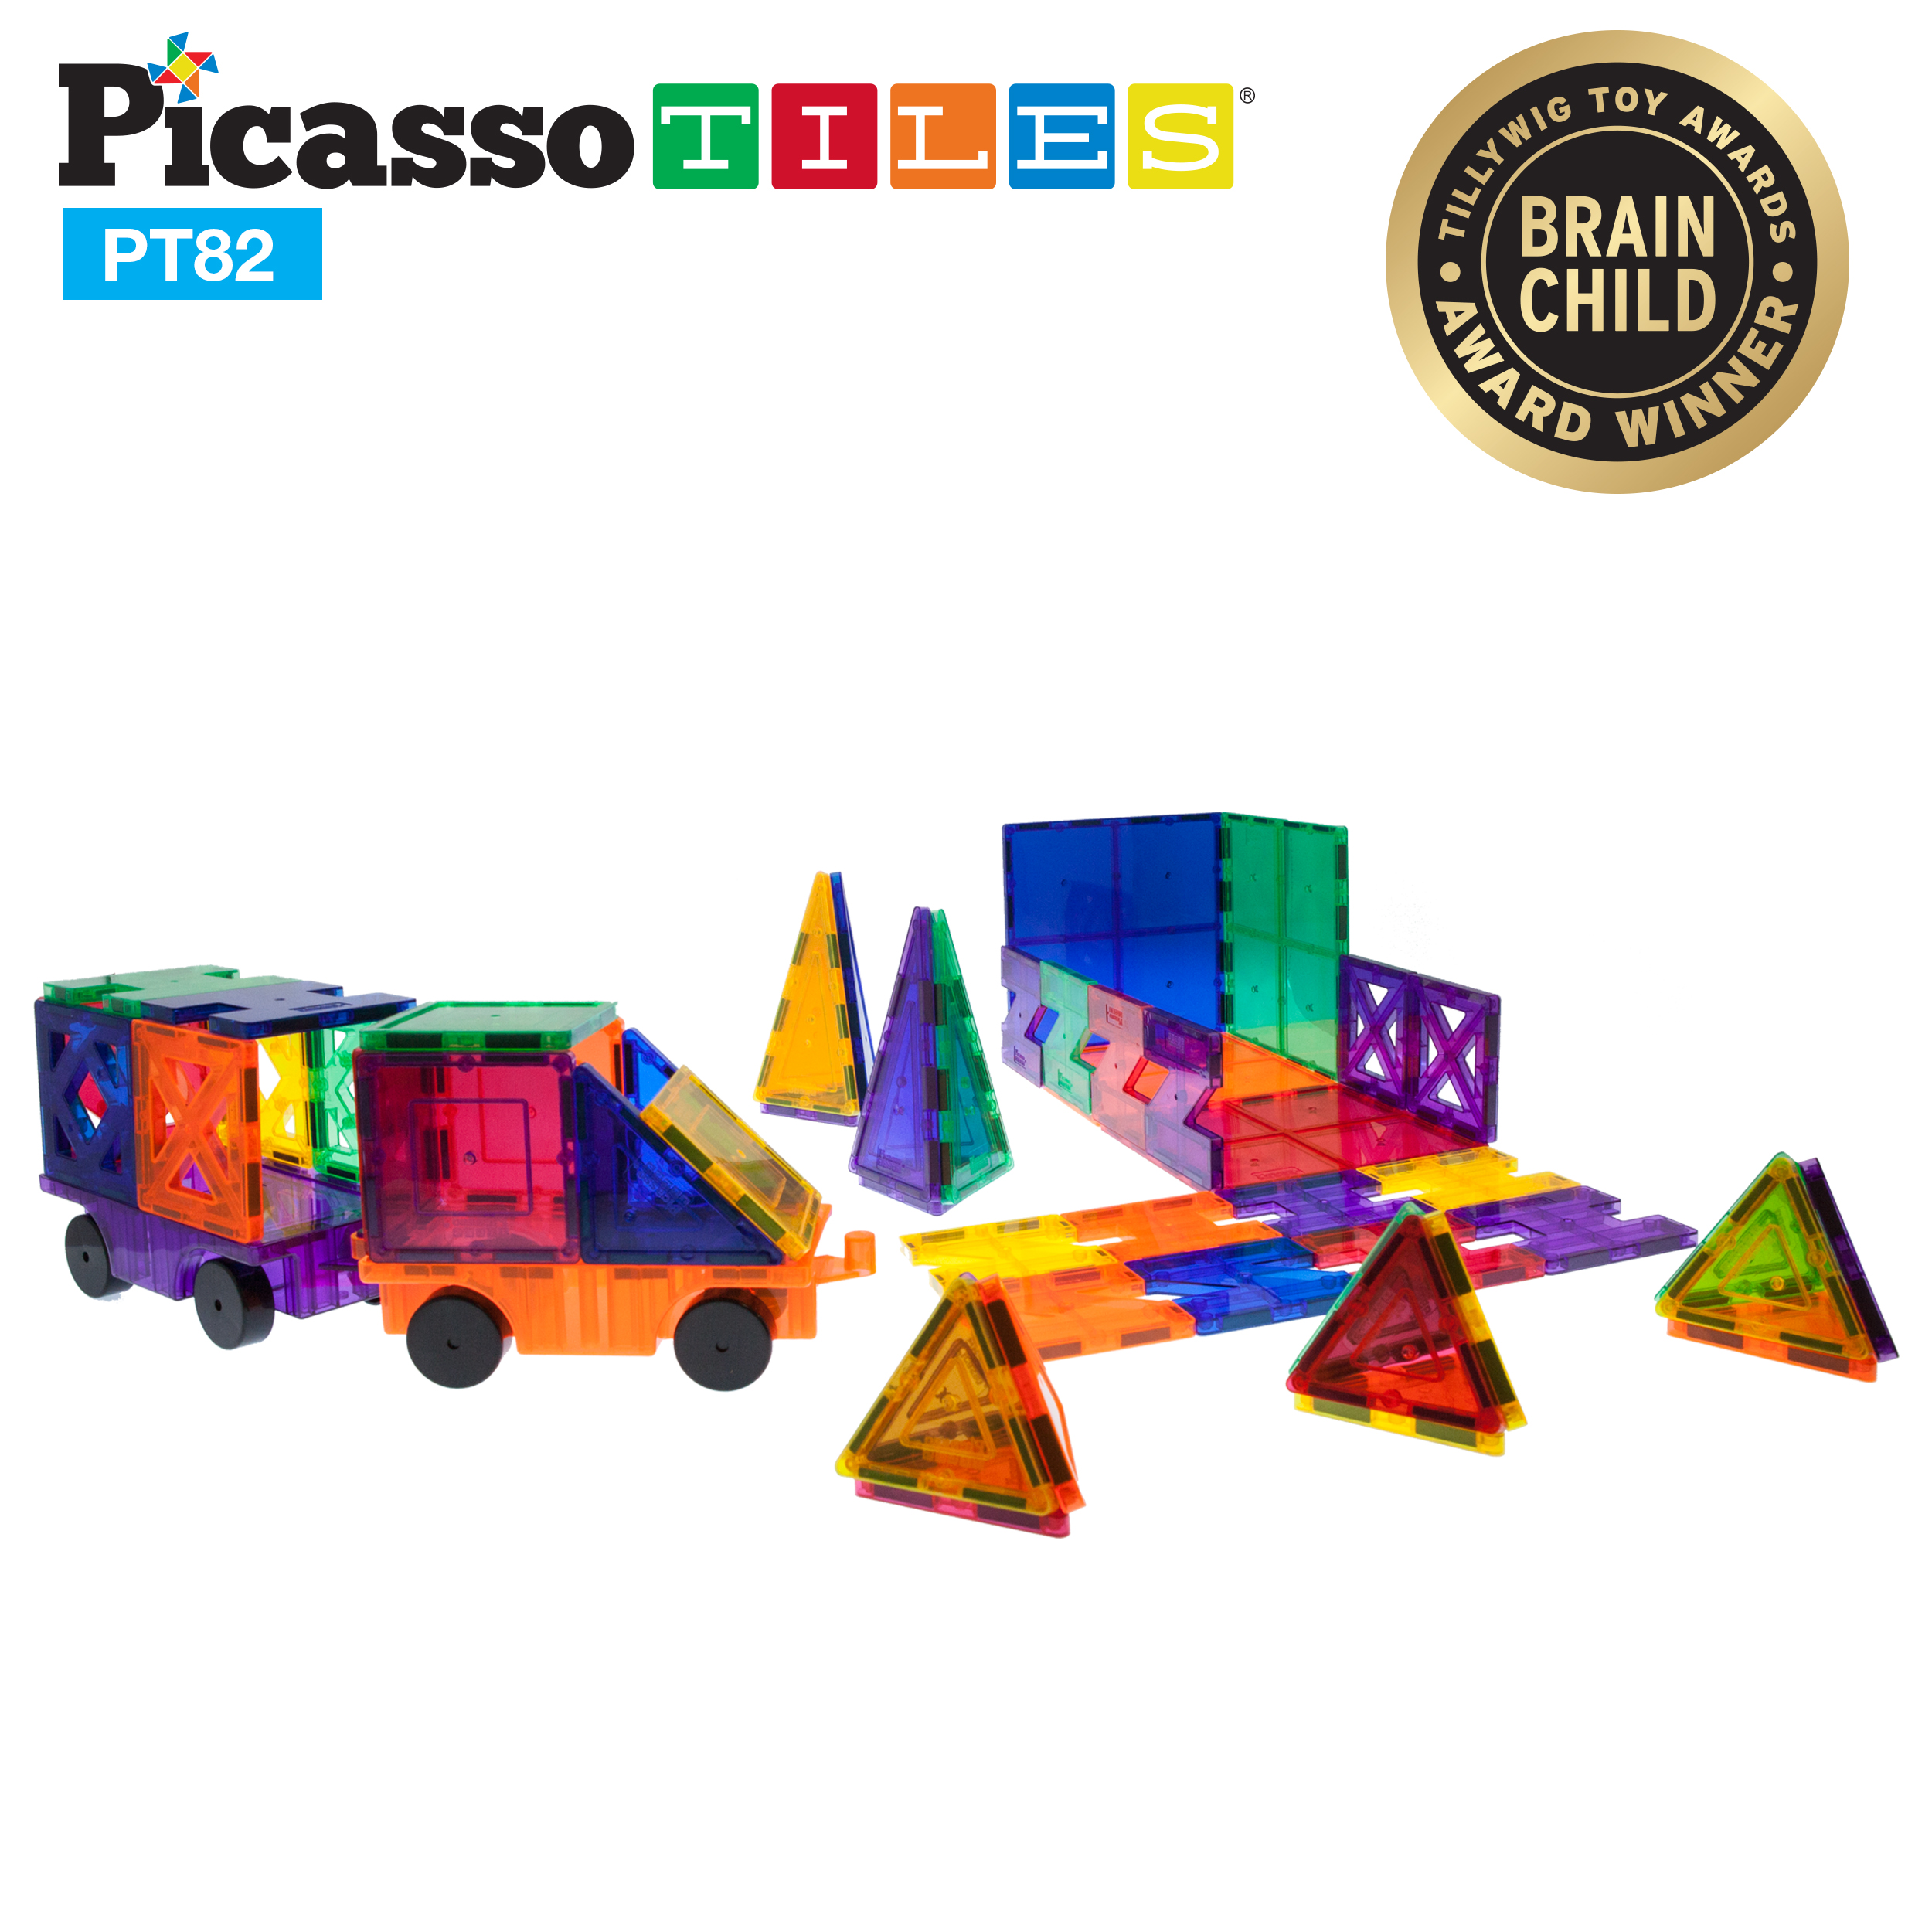 PicassoTiles 82 Piece Designer Artistry Set Clear 3D Magnet Building Blocks Tiles... by PicassoTiles